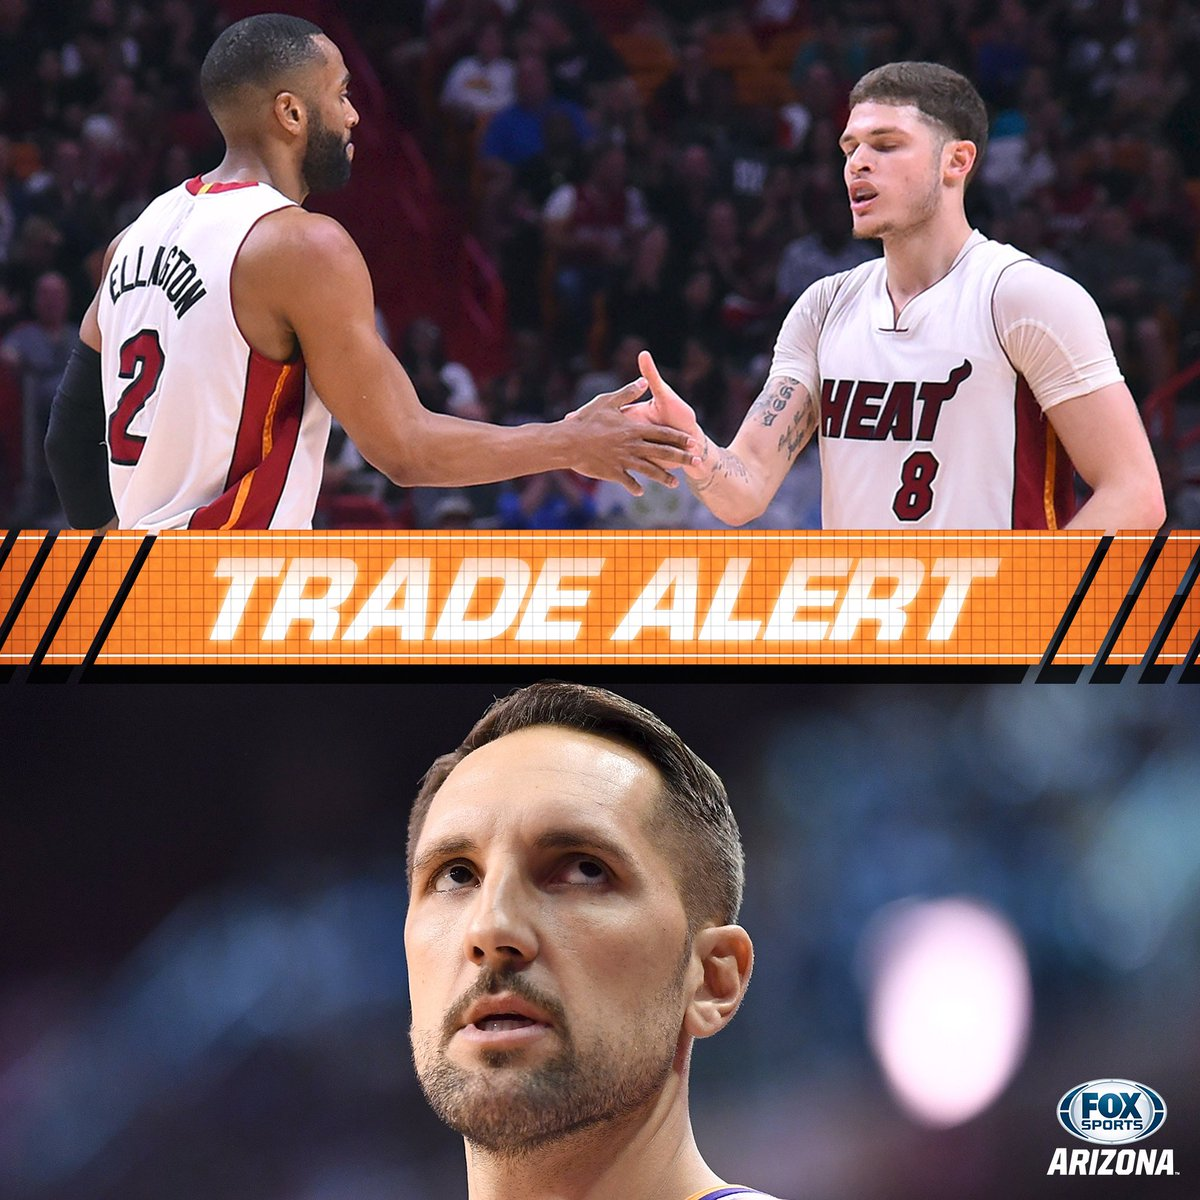 The #Suns acquire guards Wayne Ellington and Tyler Johnson for the #Heat for forward Ryan Anderson. #NBATwitter